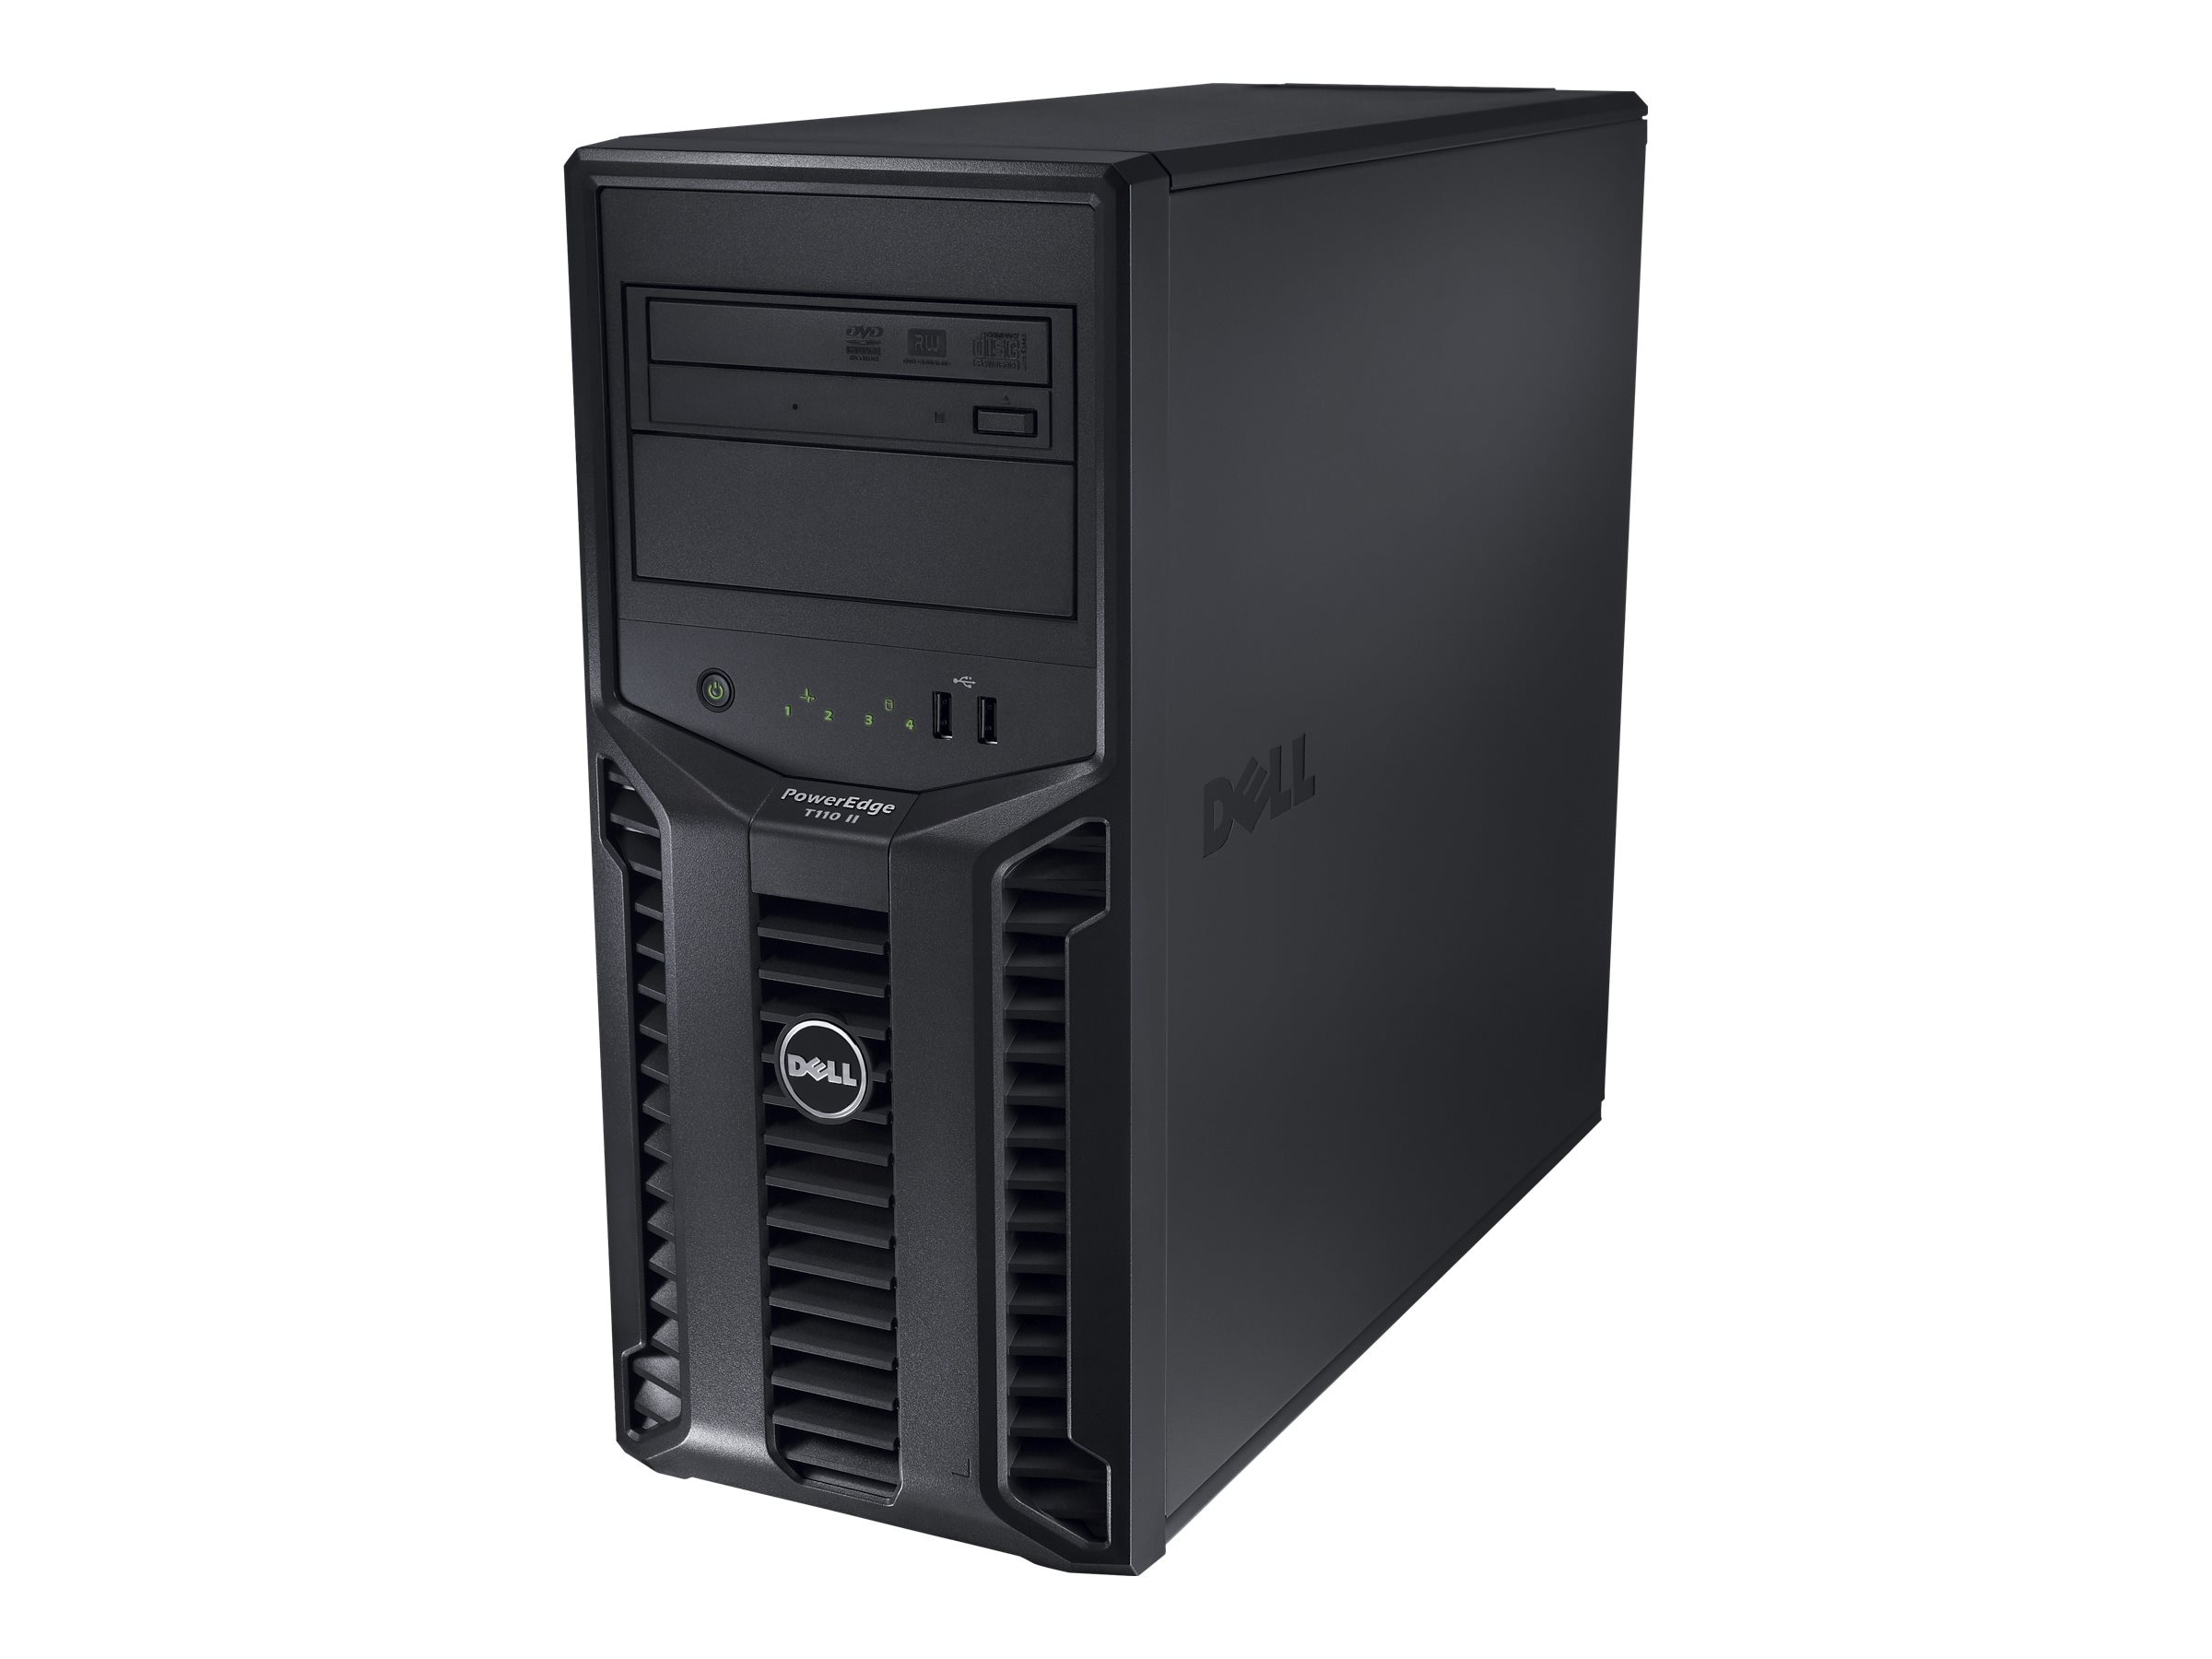 Dell PowerEdge T110 II Intel 3.4GHz Core i3, 469-2320, 17989193, Servers